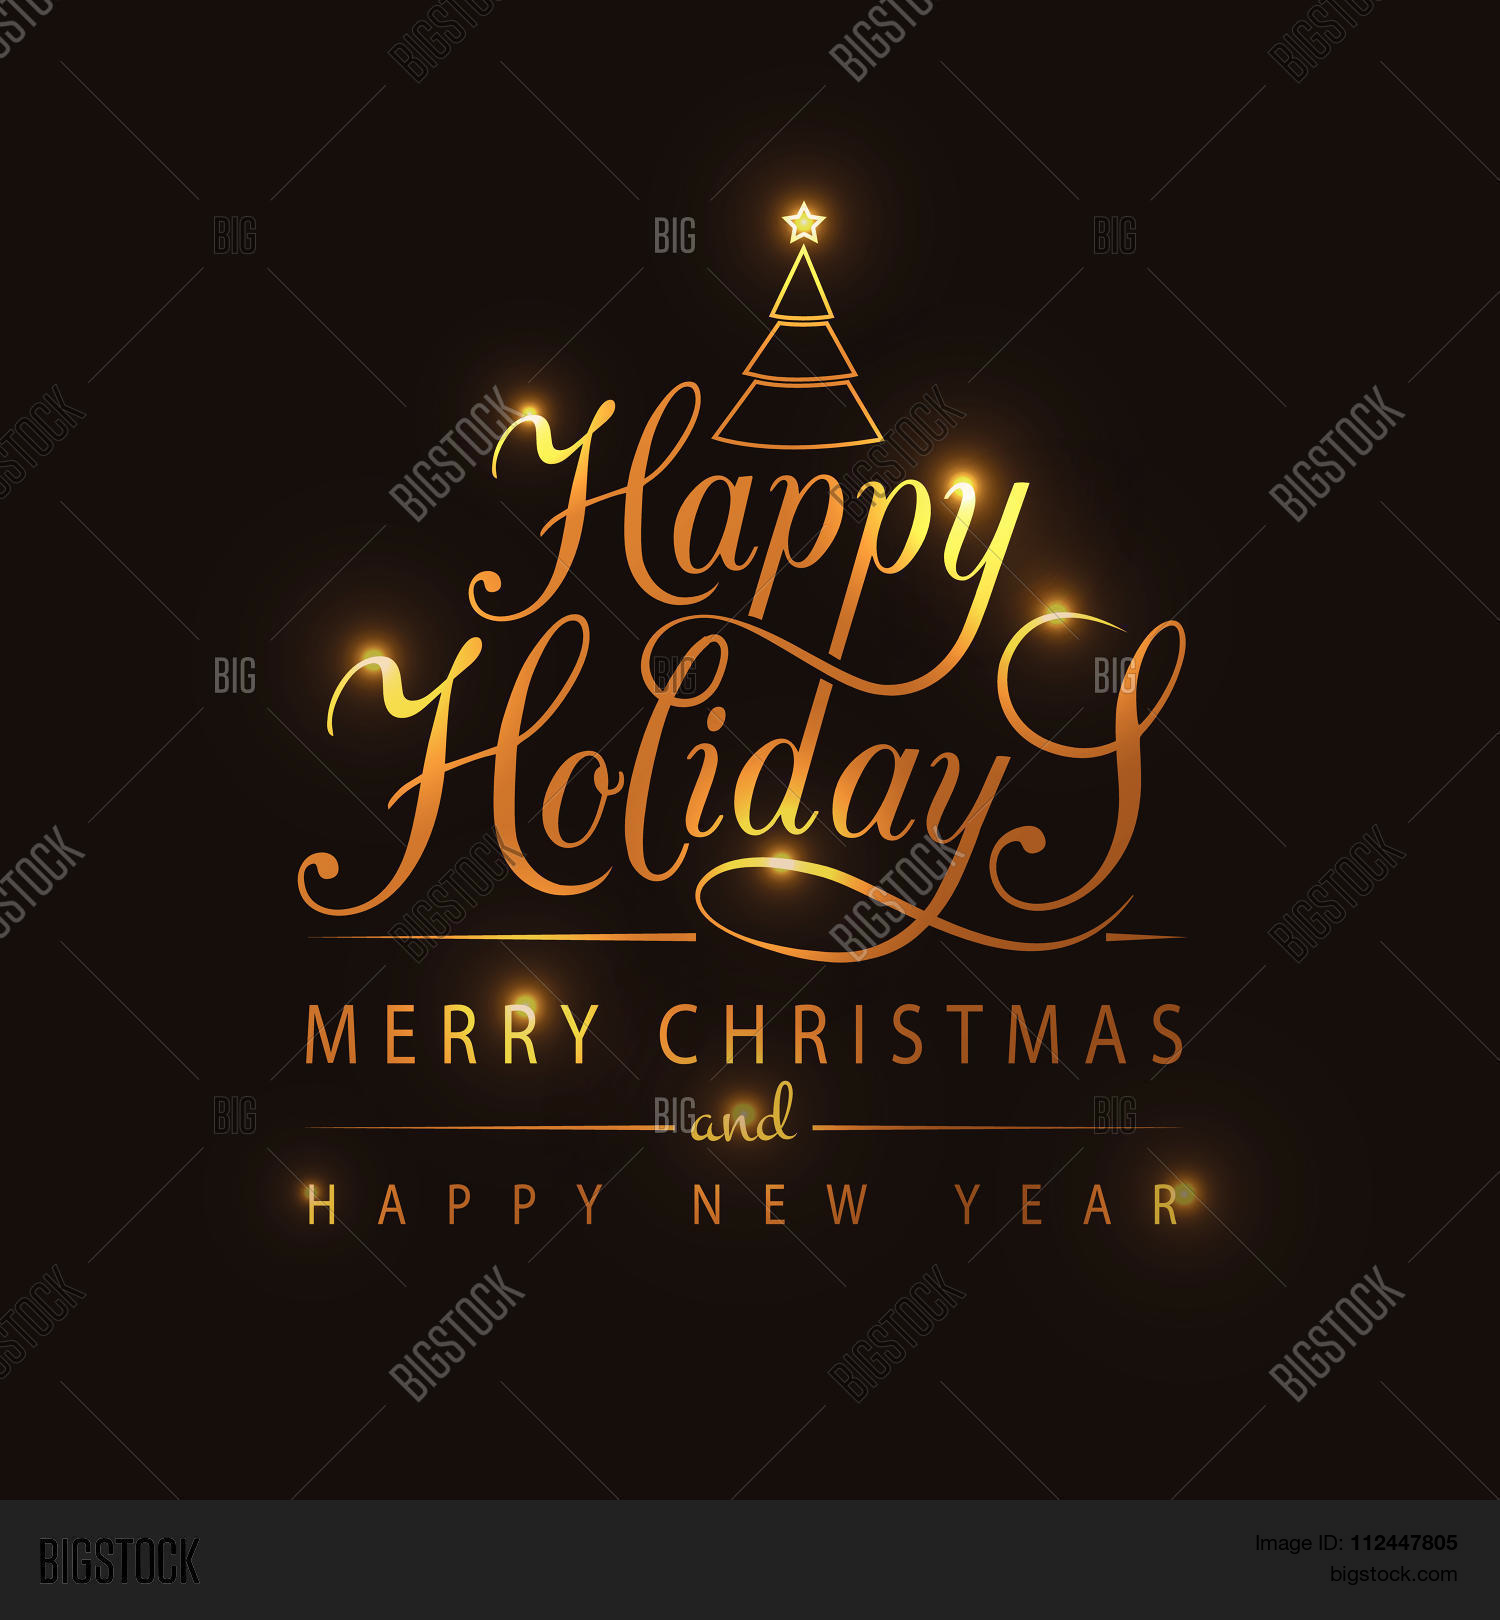 Happy holidays vector photo free trial bigstock happy holidays typography for christmasnew year greeting cardinvitation m4hsunfo